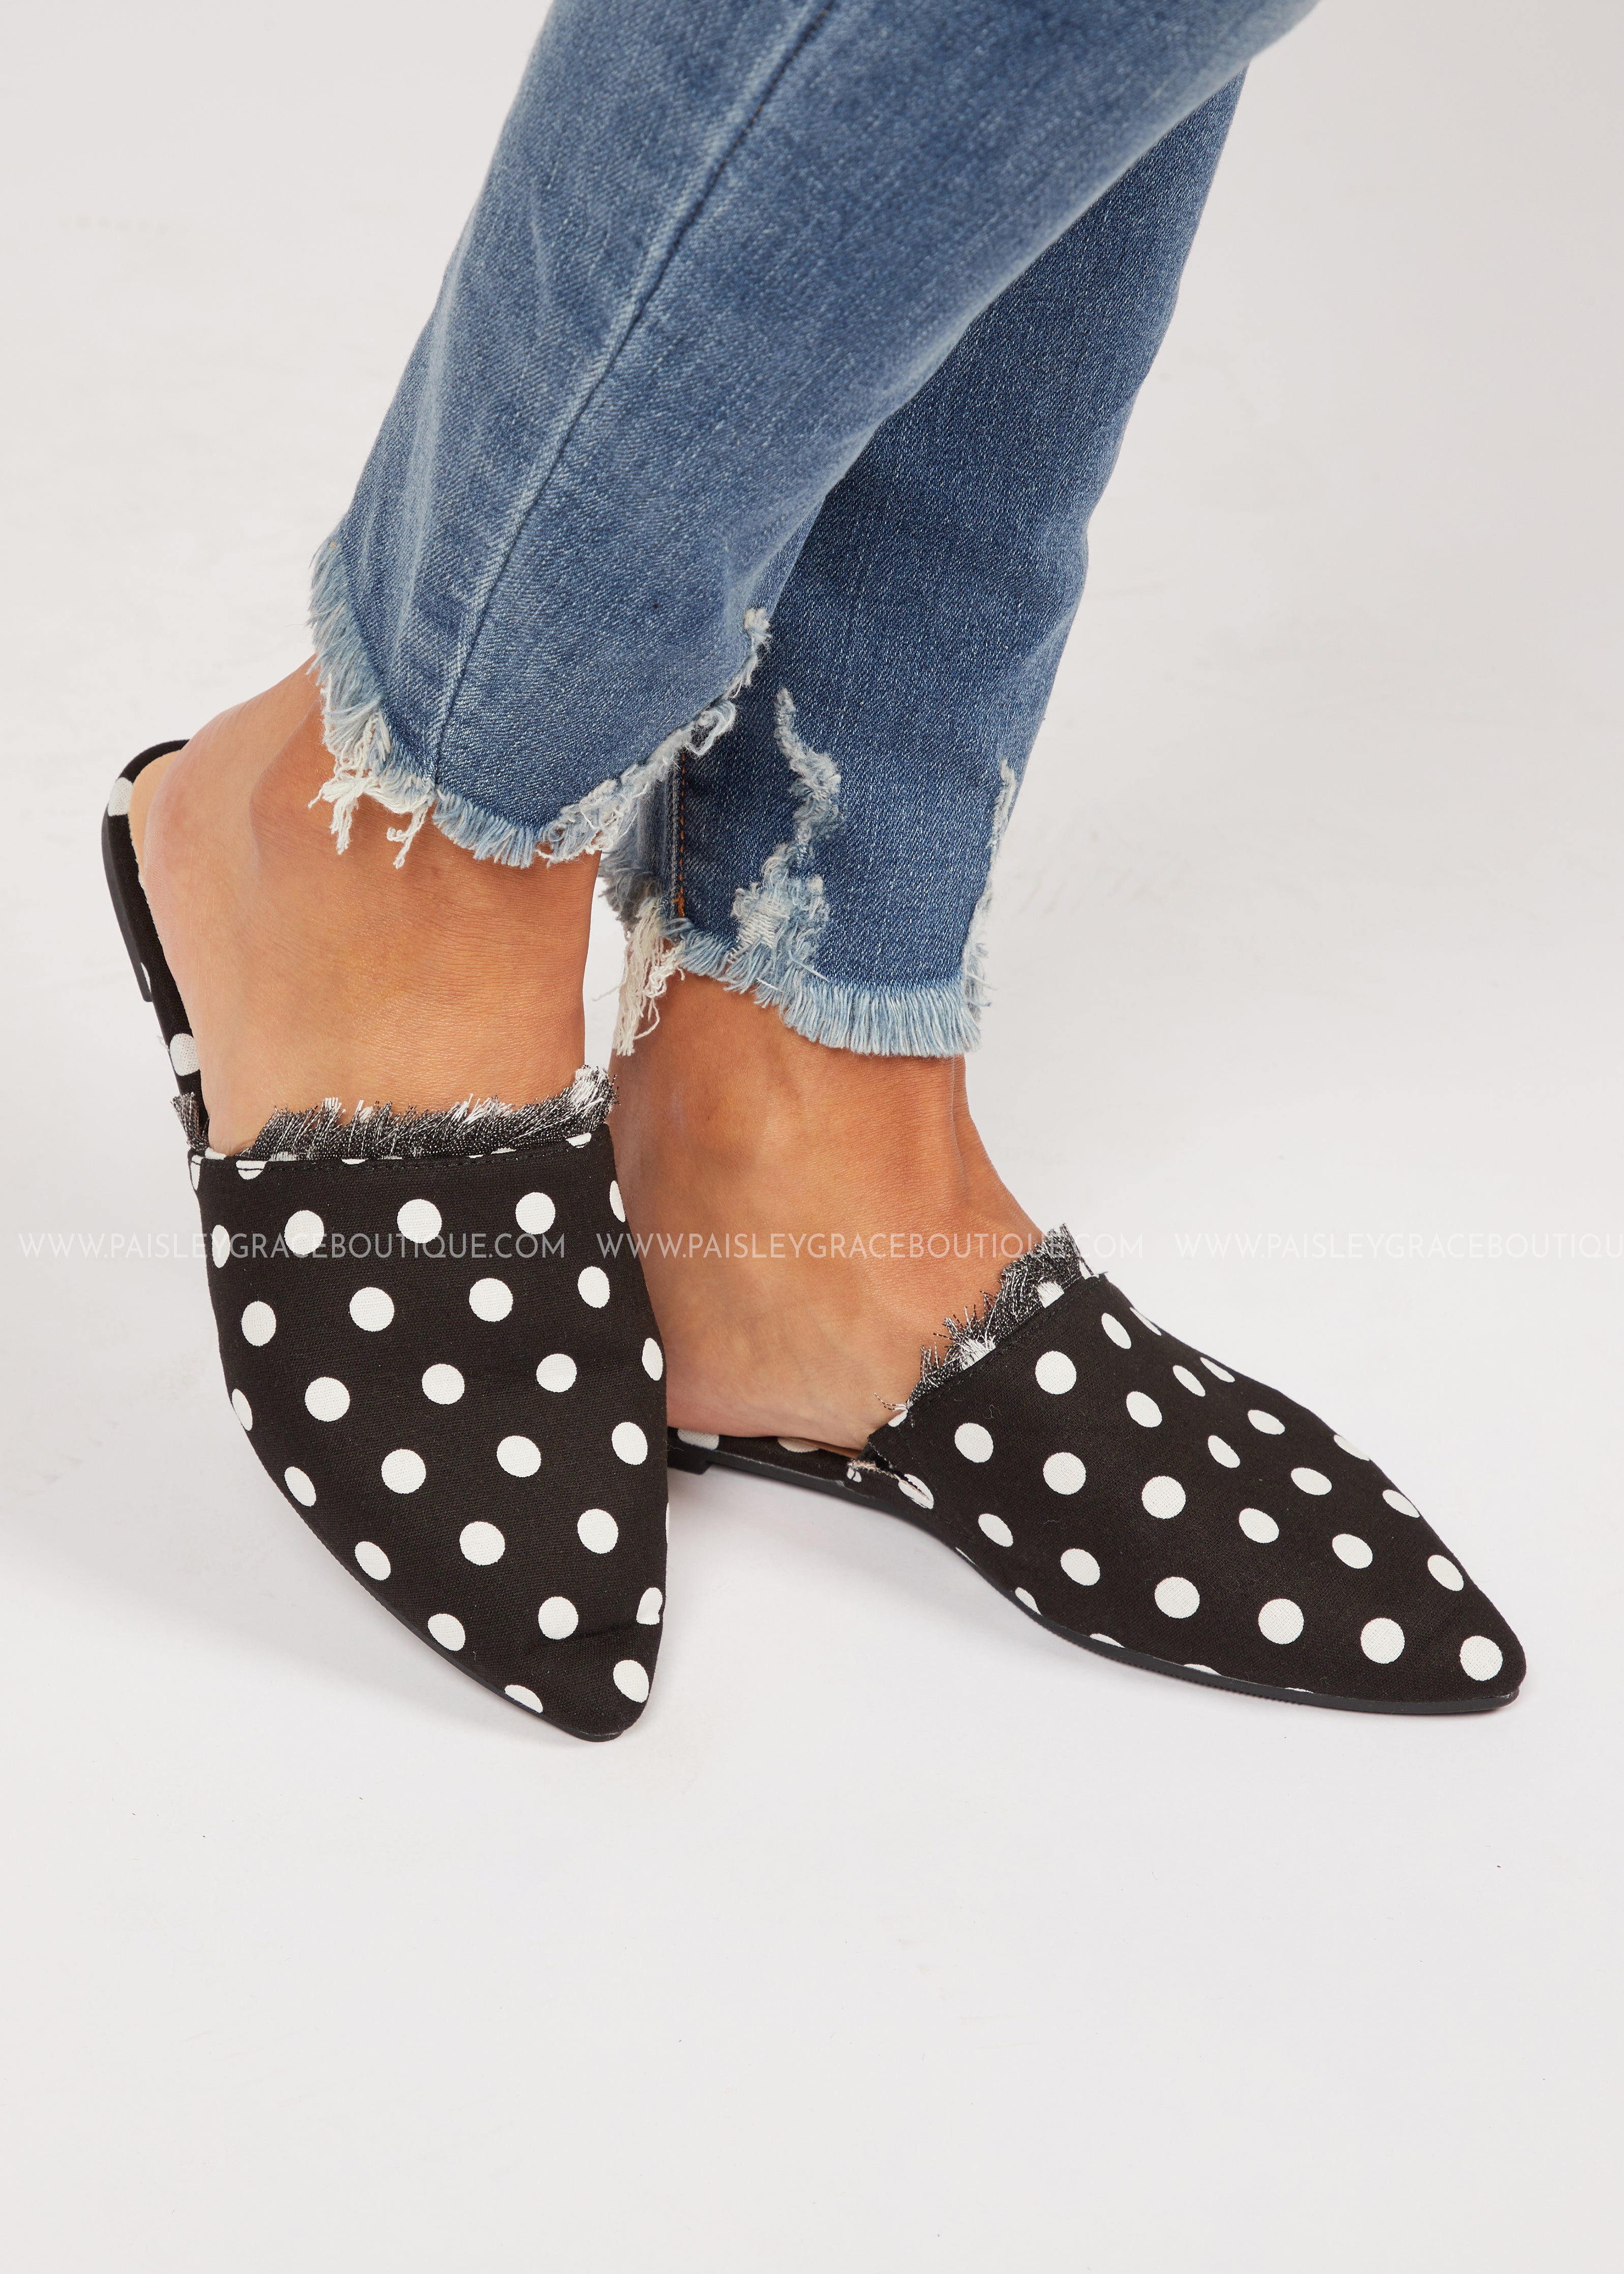 Kennedy Flats- POLKA DOT  - FINAL SALE